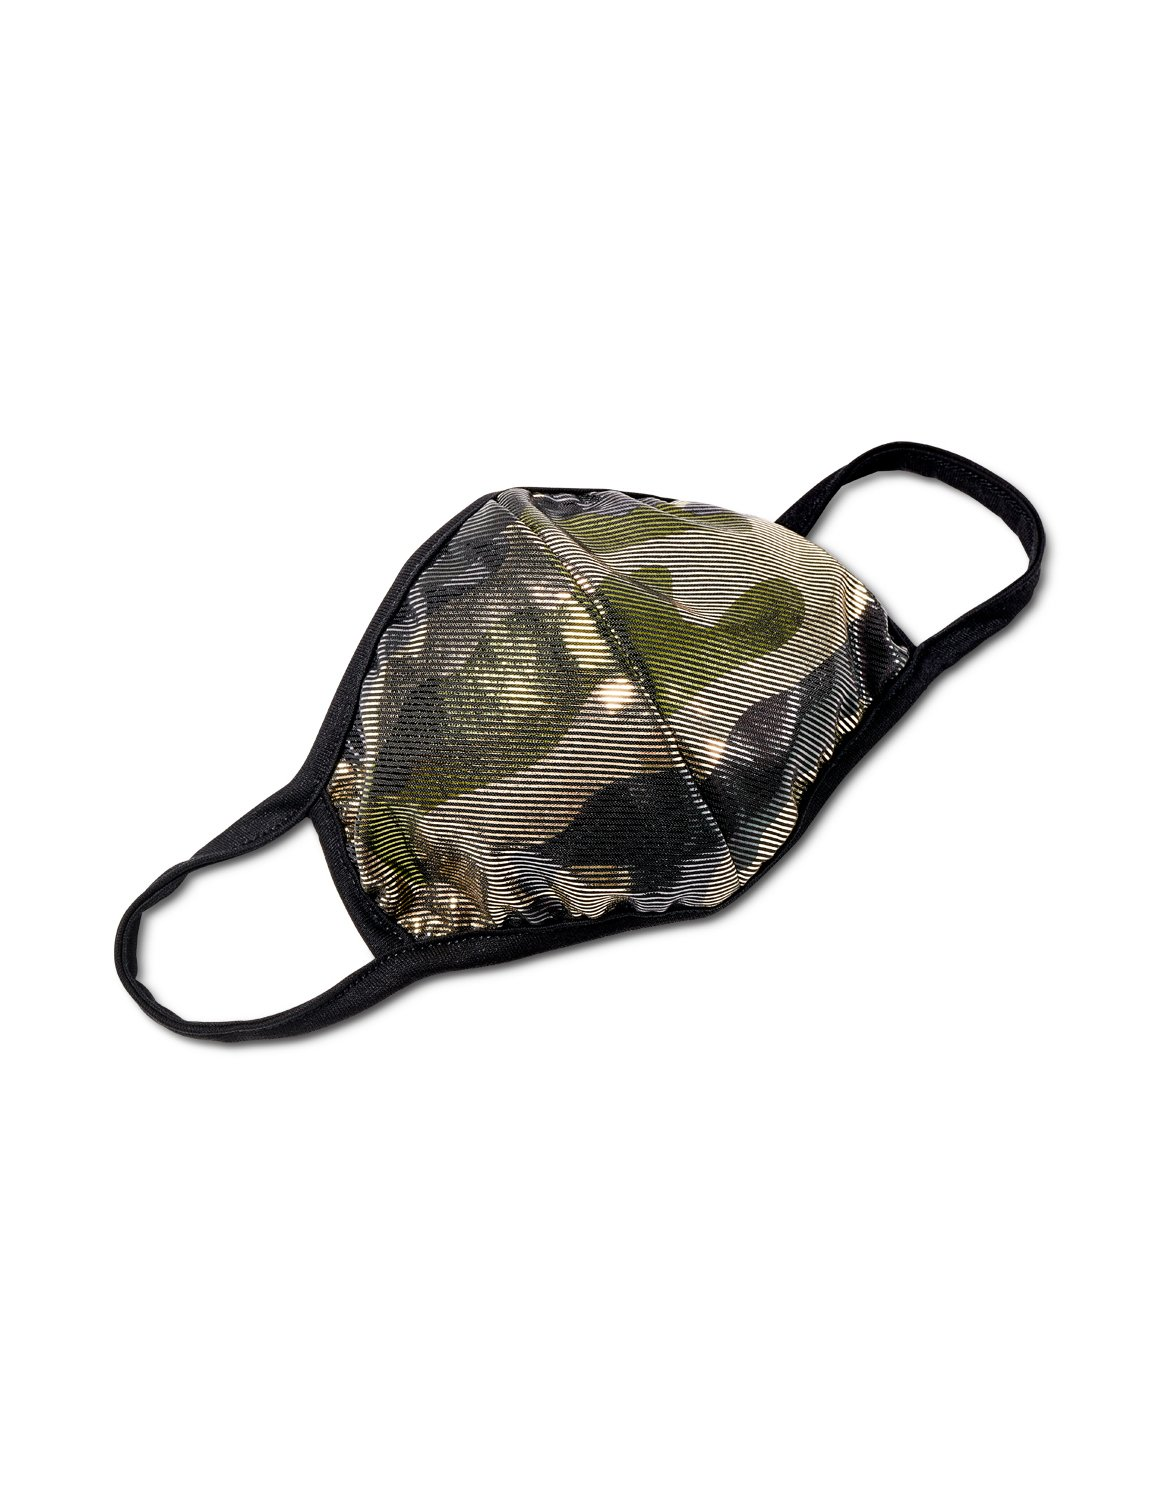 Pre-Order Camouflage Foil Fashion Mask -Neutral - Front